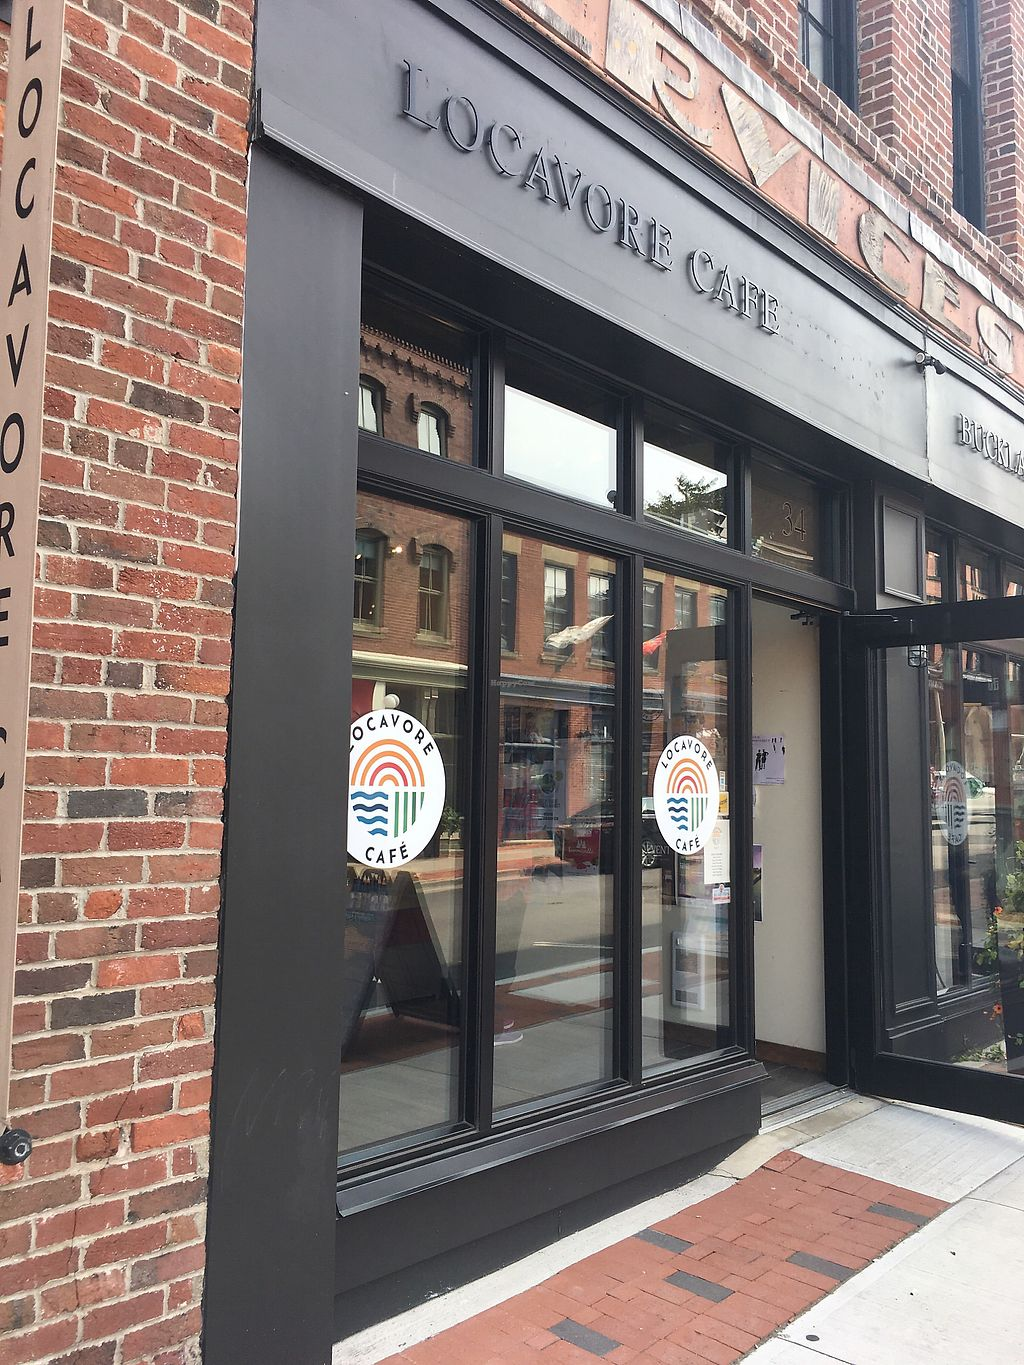 """Photo of CLOSED: Locavore Cafe  by <a href=""""/members/profile/igor6200"""">igor6200</a> <br/>Front of store <br/> August 29, 2017  - <a href='/contact/abuse/image/98762/298653'>Report</a>"""